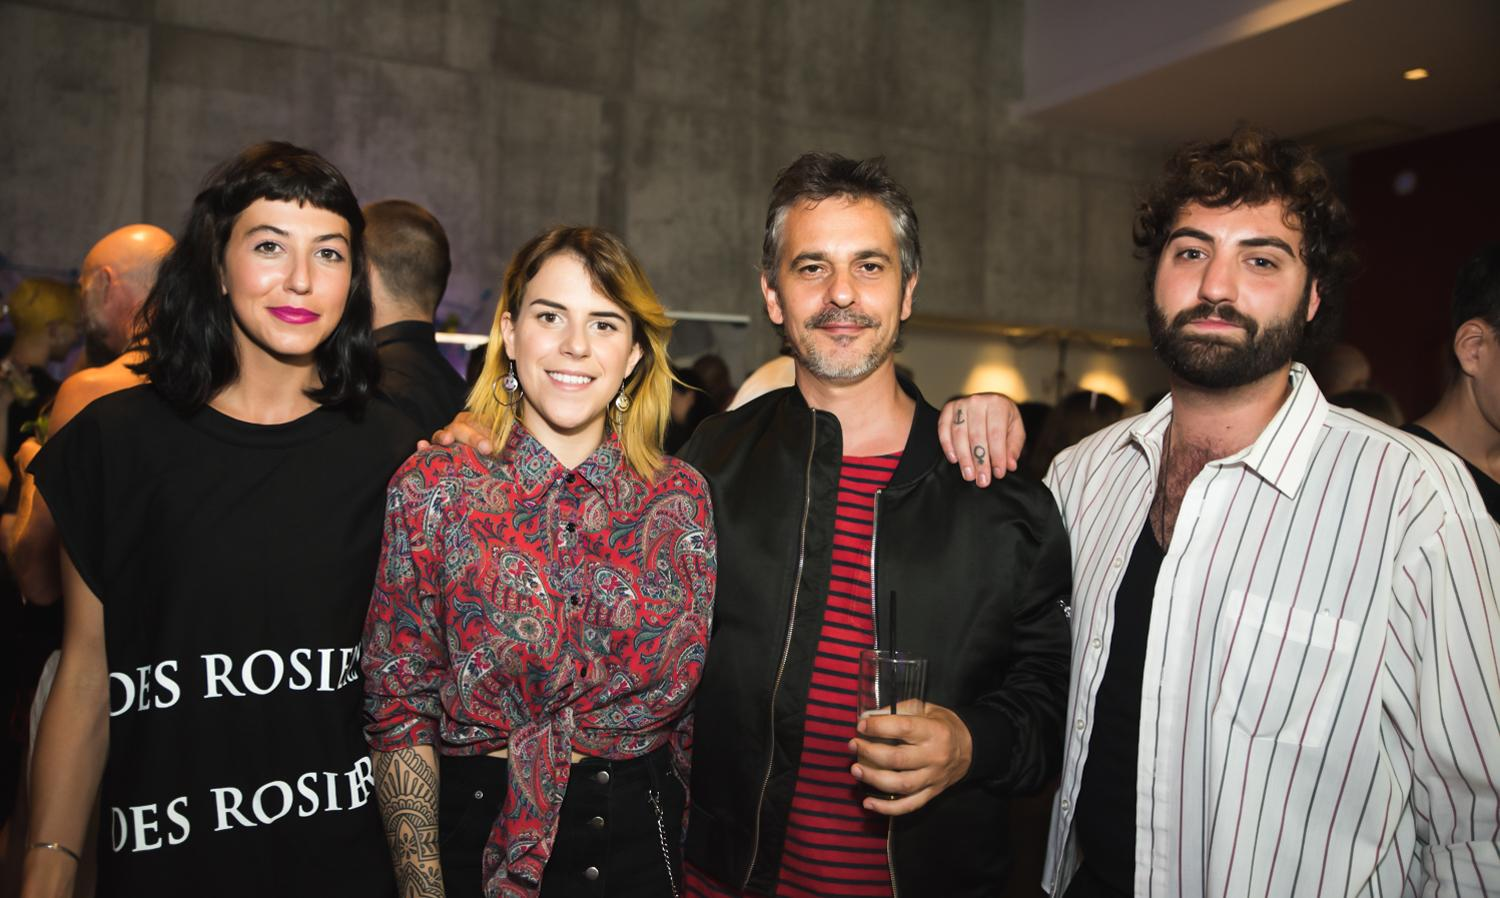 Le fashion cocktail de lancement du Festival Mode et Design [Photos]